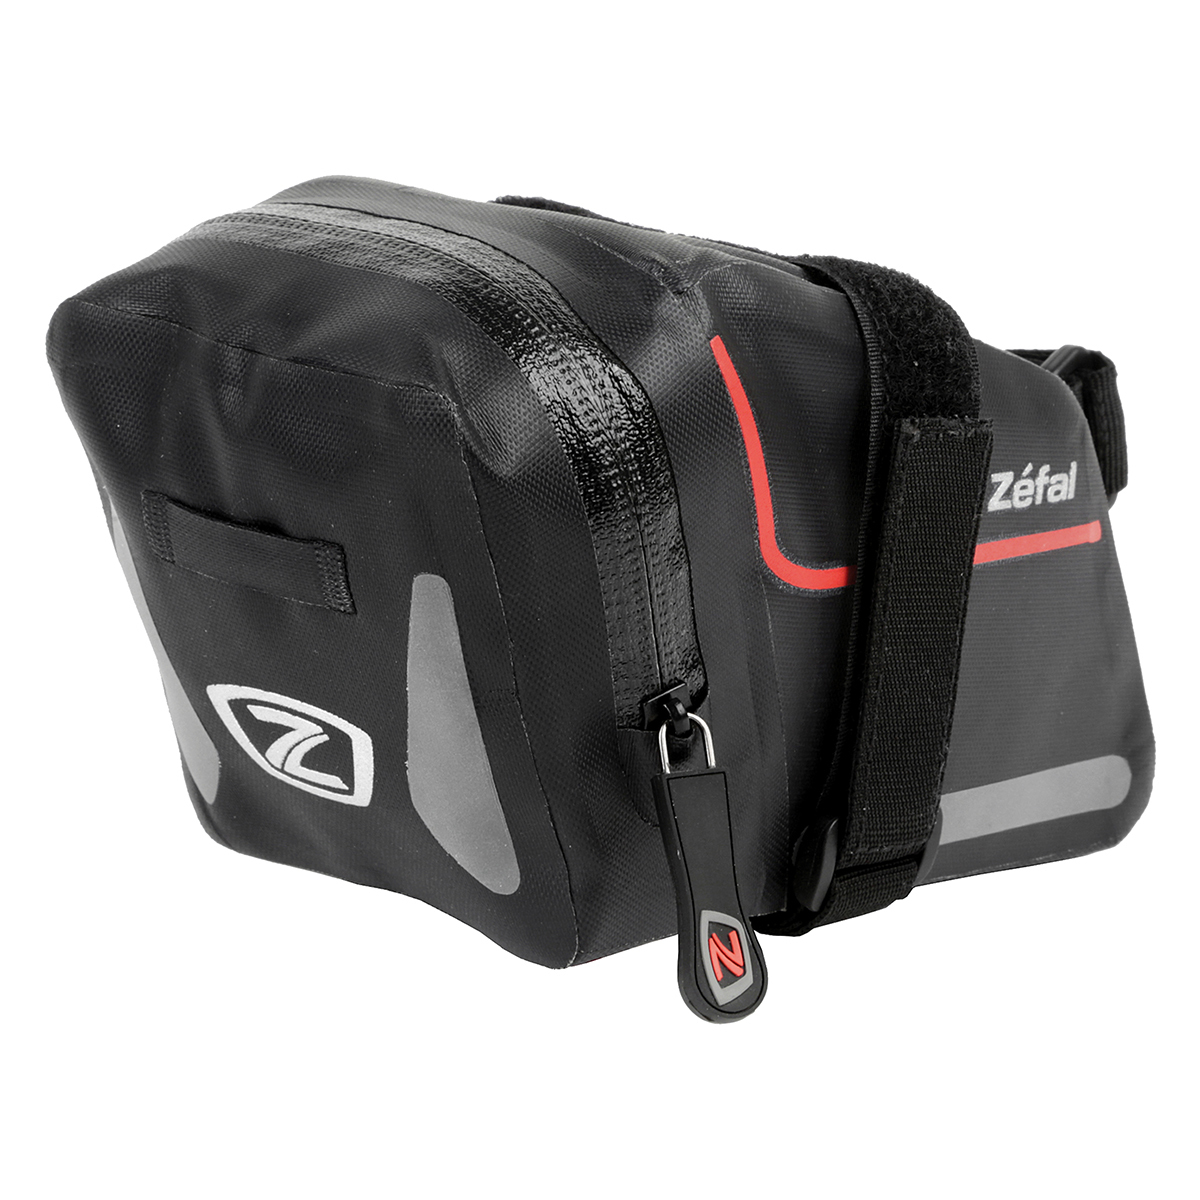 Zefal Z-Dry Seat Mount Bag Large